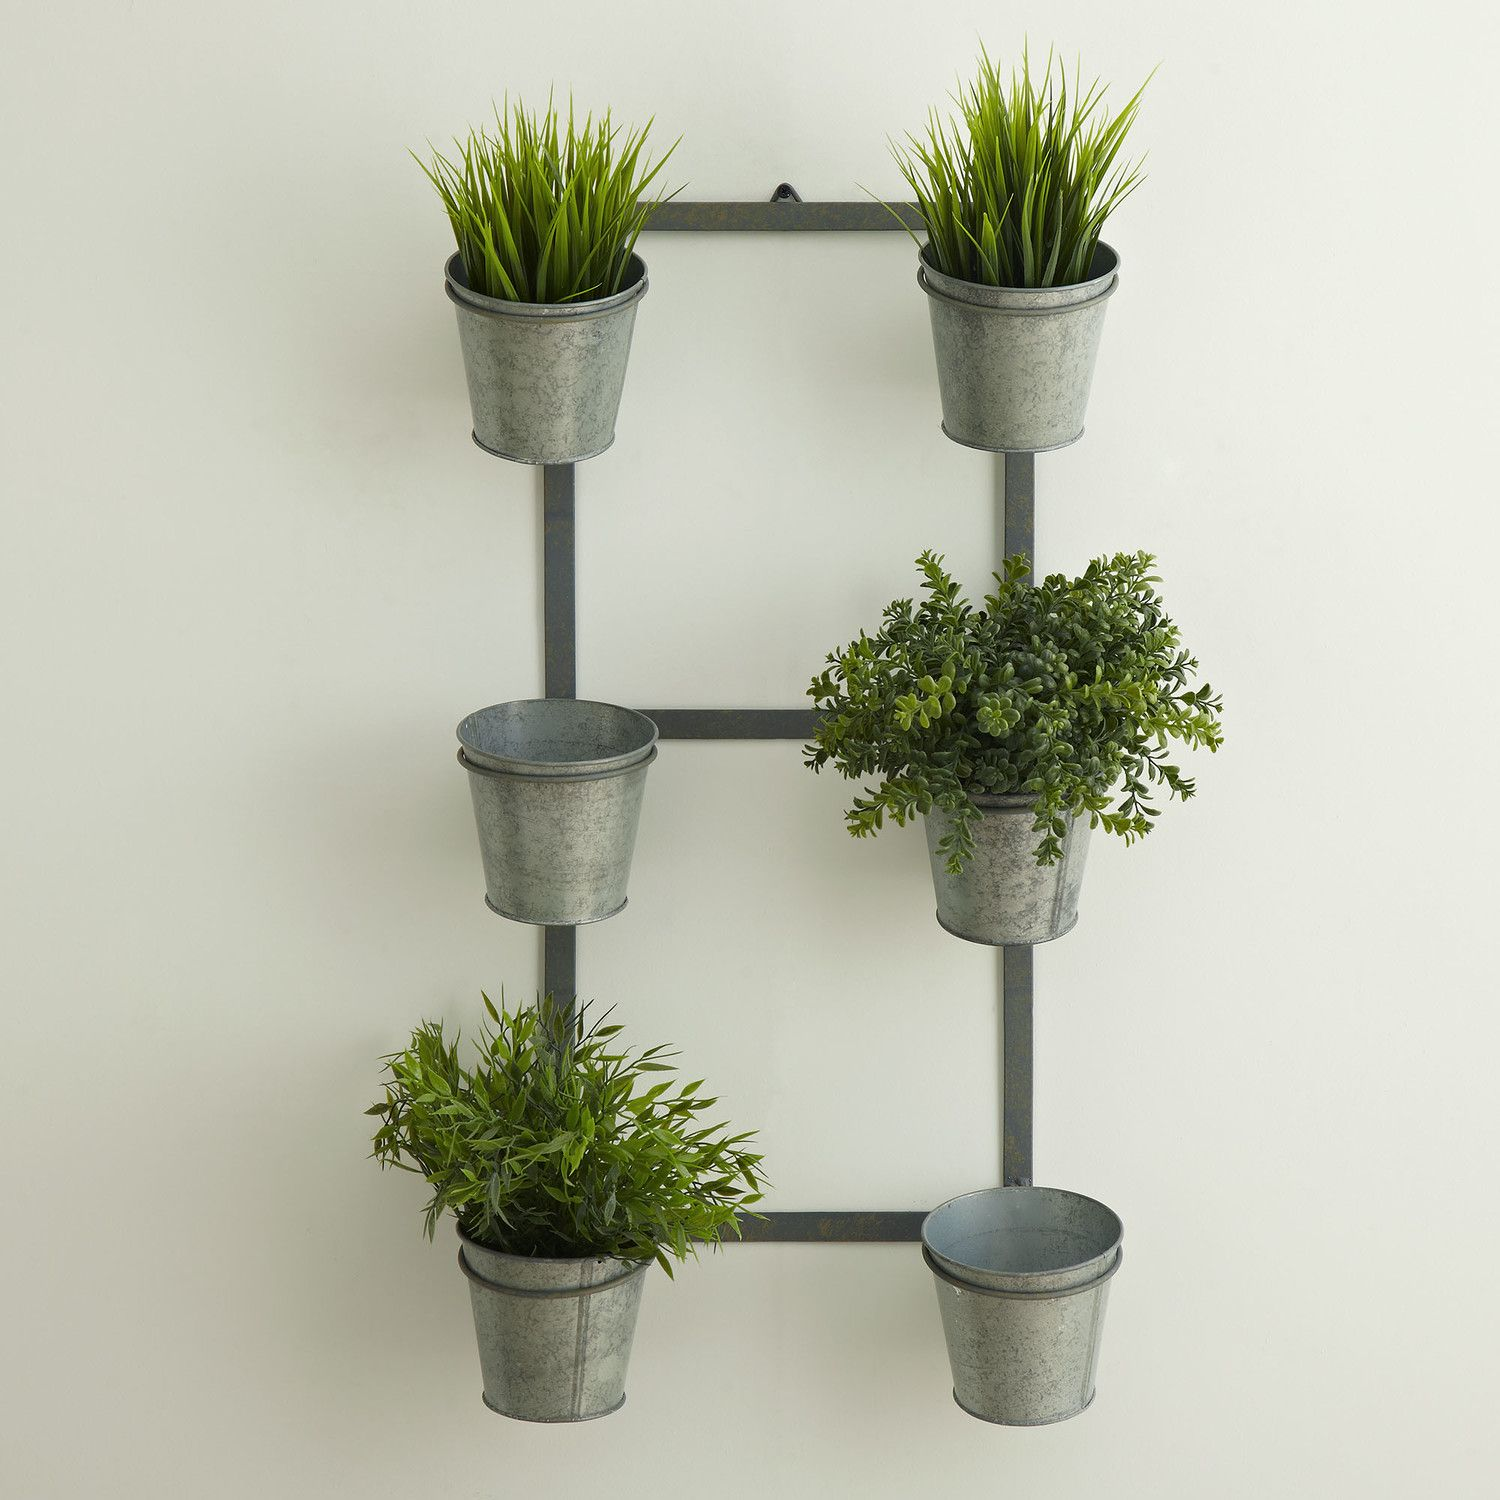 Galvanized wall planter reminds me of